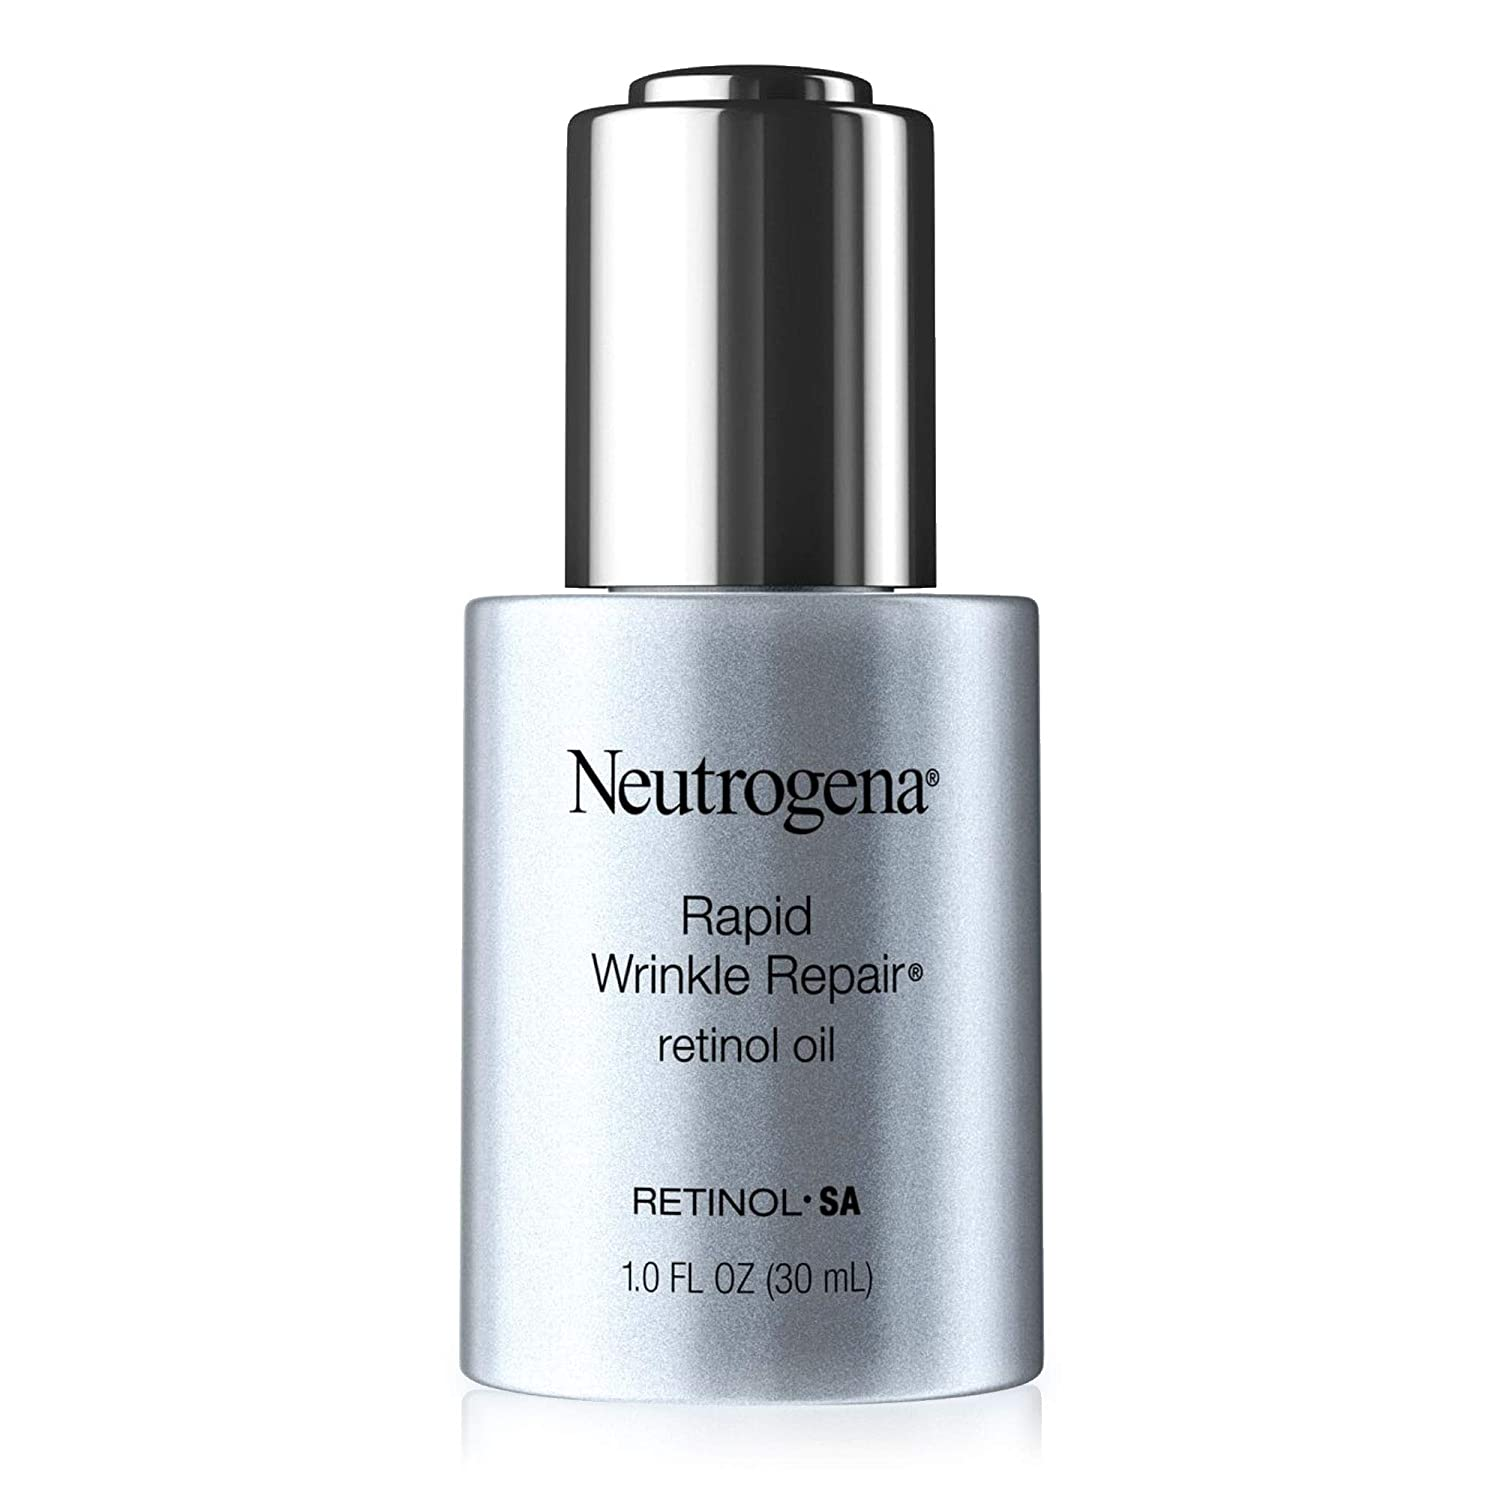 Neutrogena Rapid Wrinkle Repair Serum Review